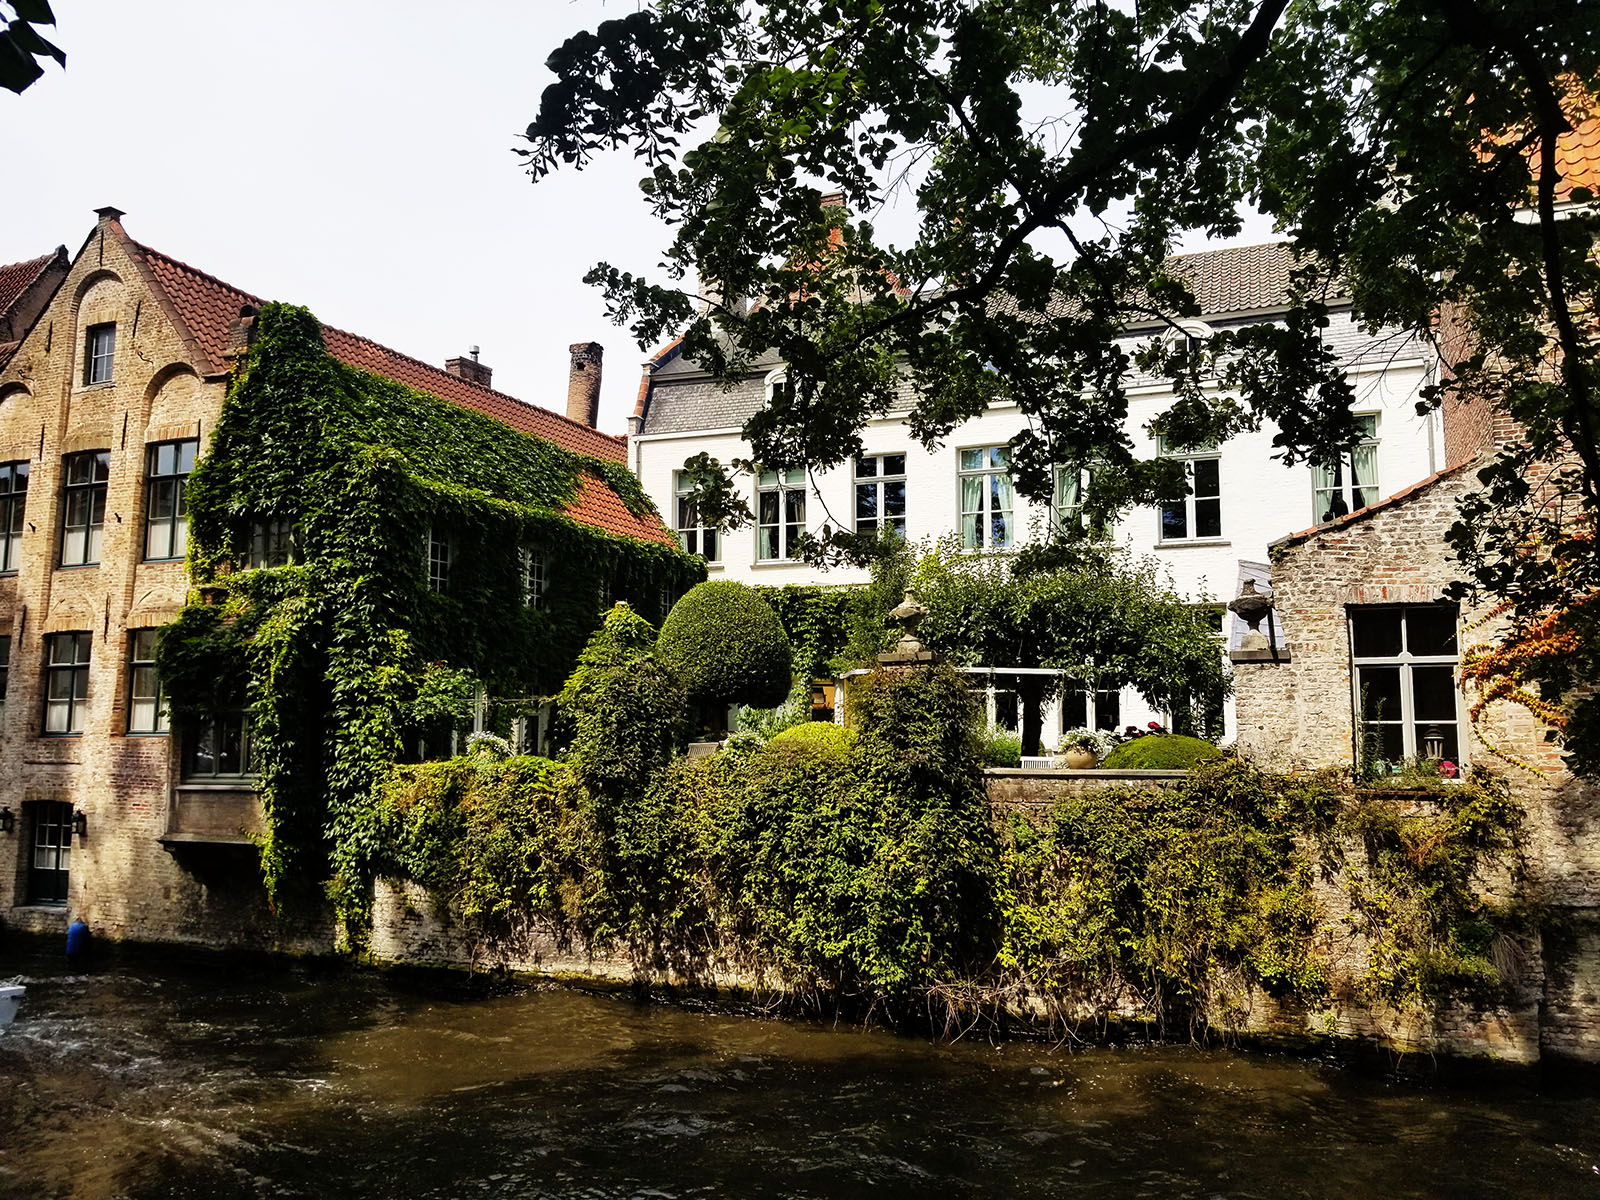 Bruges canal with grasse and vines